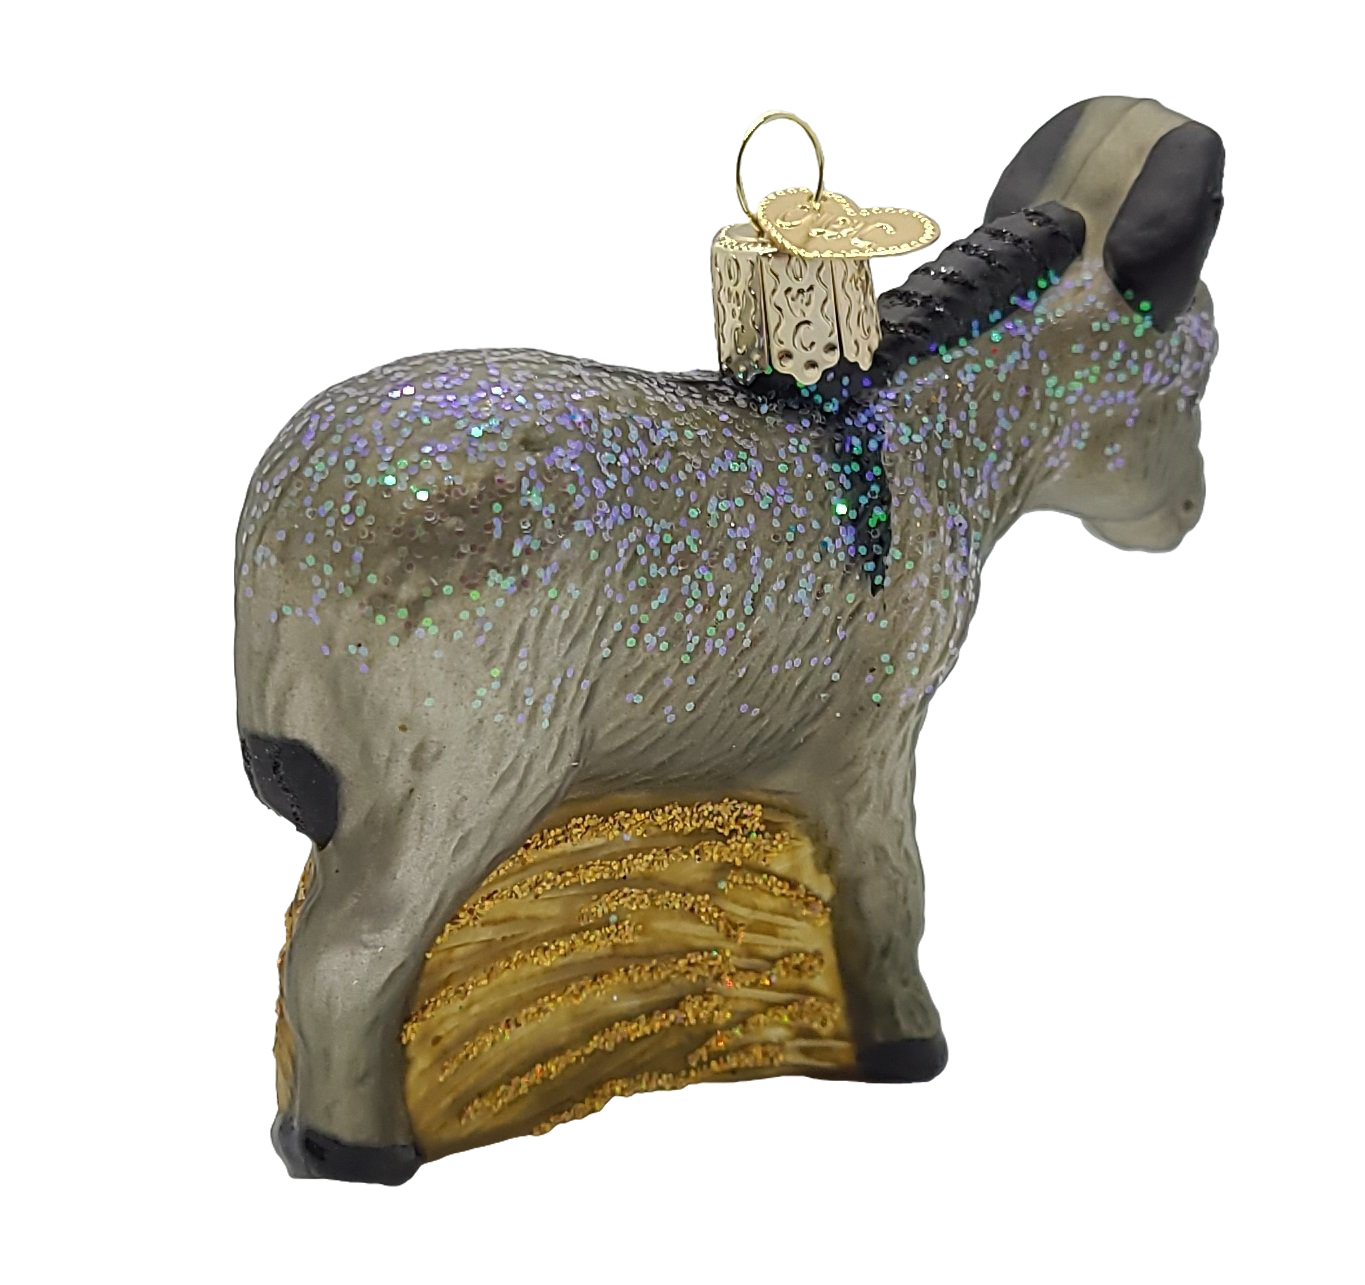 Blown Glass Donkey Ornament - Schmidt Christmas Market Christmas Decoration